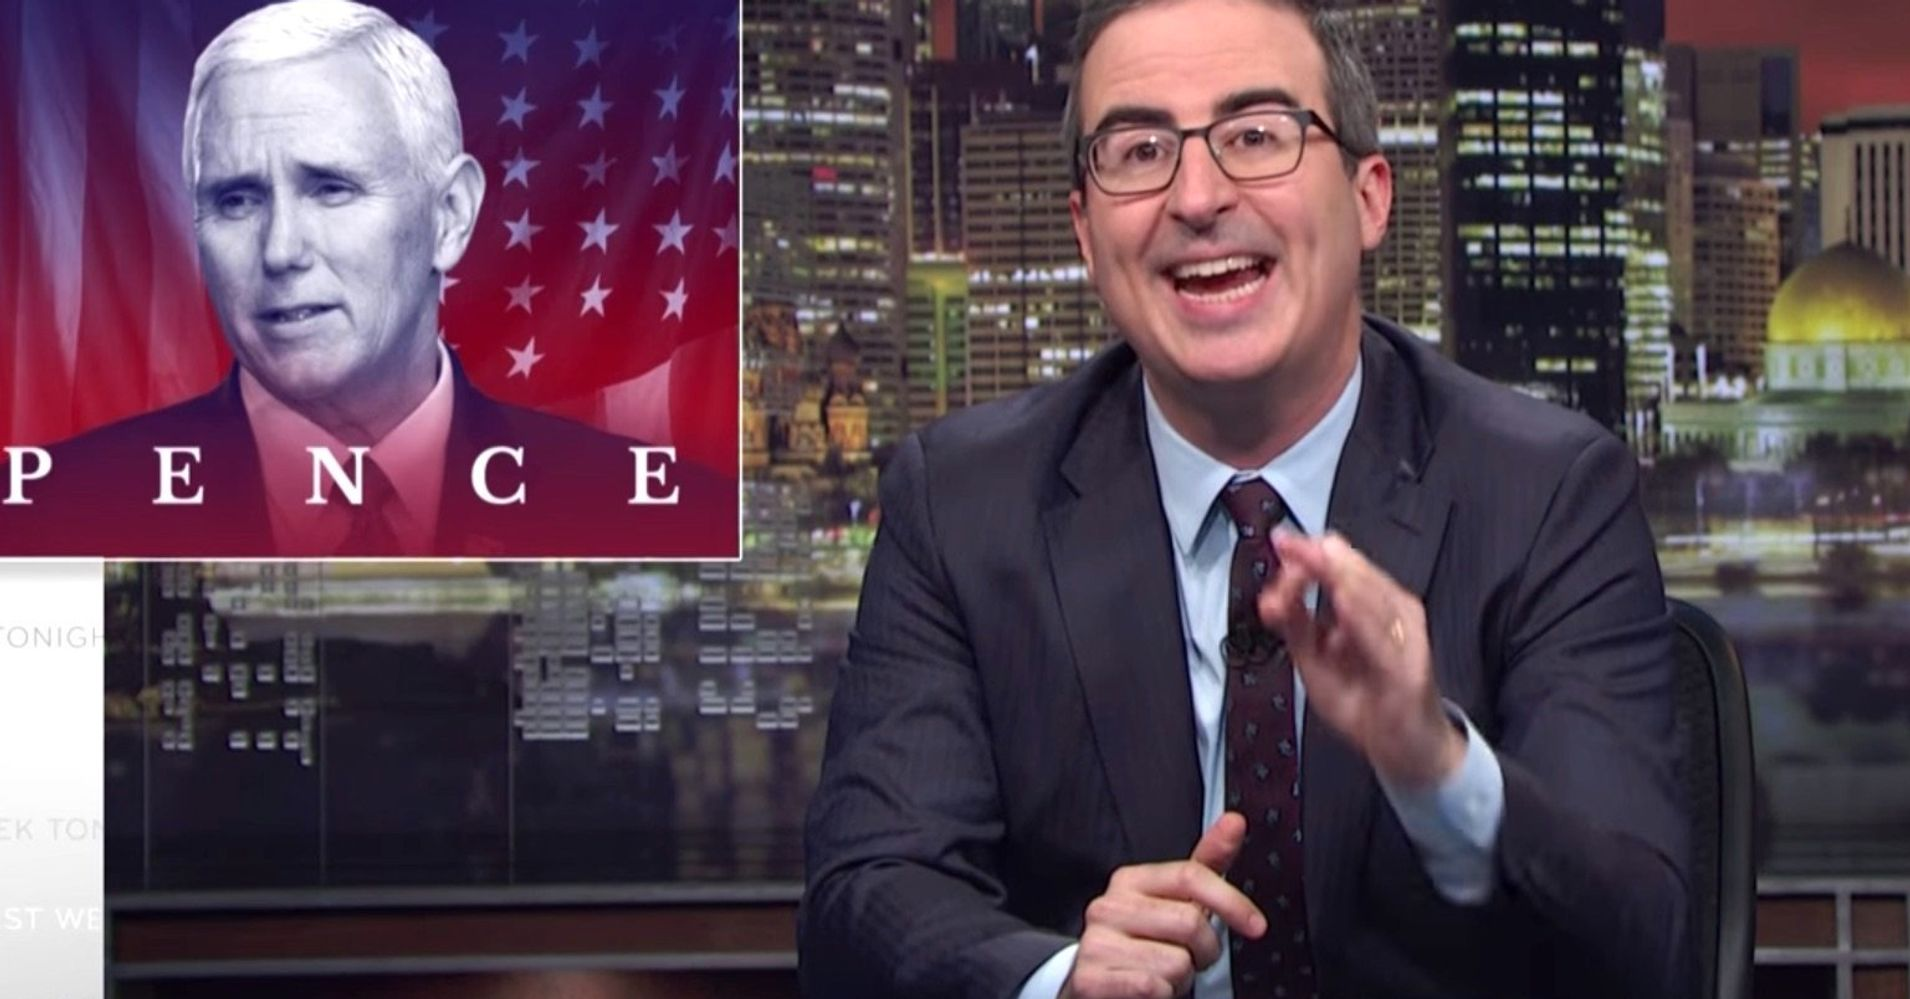 John Oliver Wants Your Help Telling Mike Pence To 'Go F**k Himself'